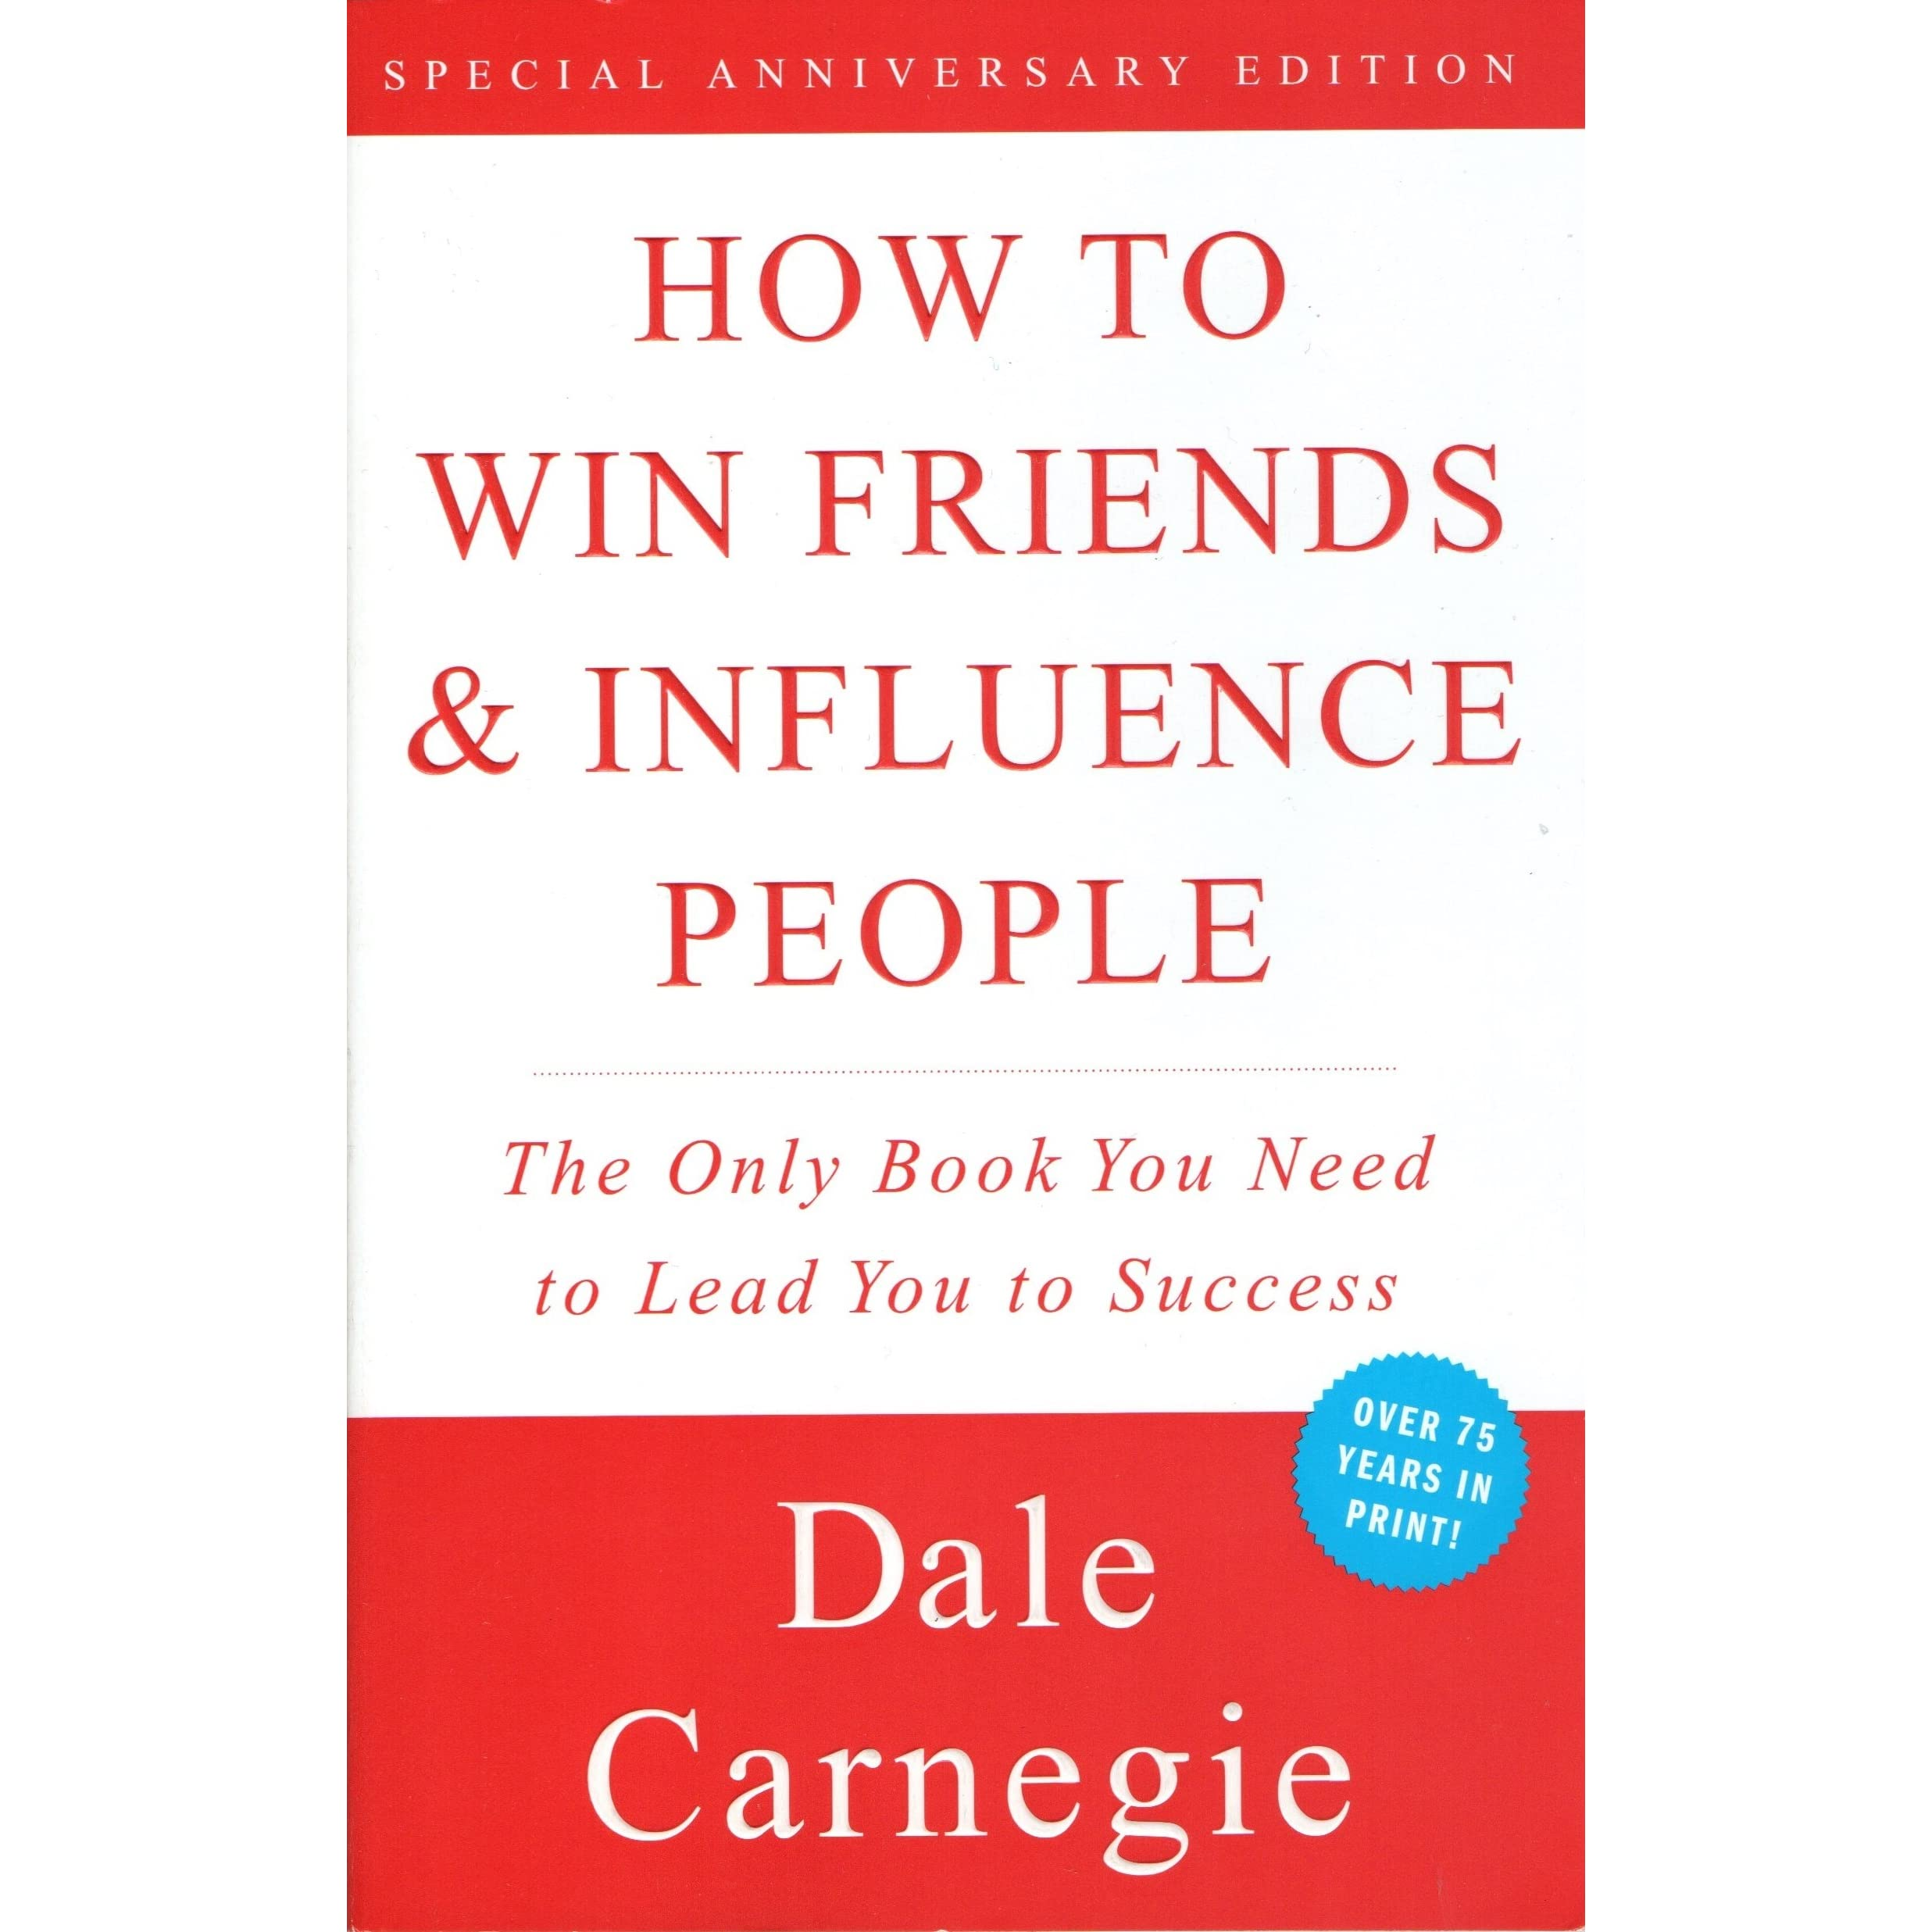 <i>How to Win Friends and Influence People</i>: Q&A #4